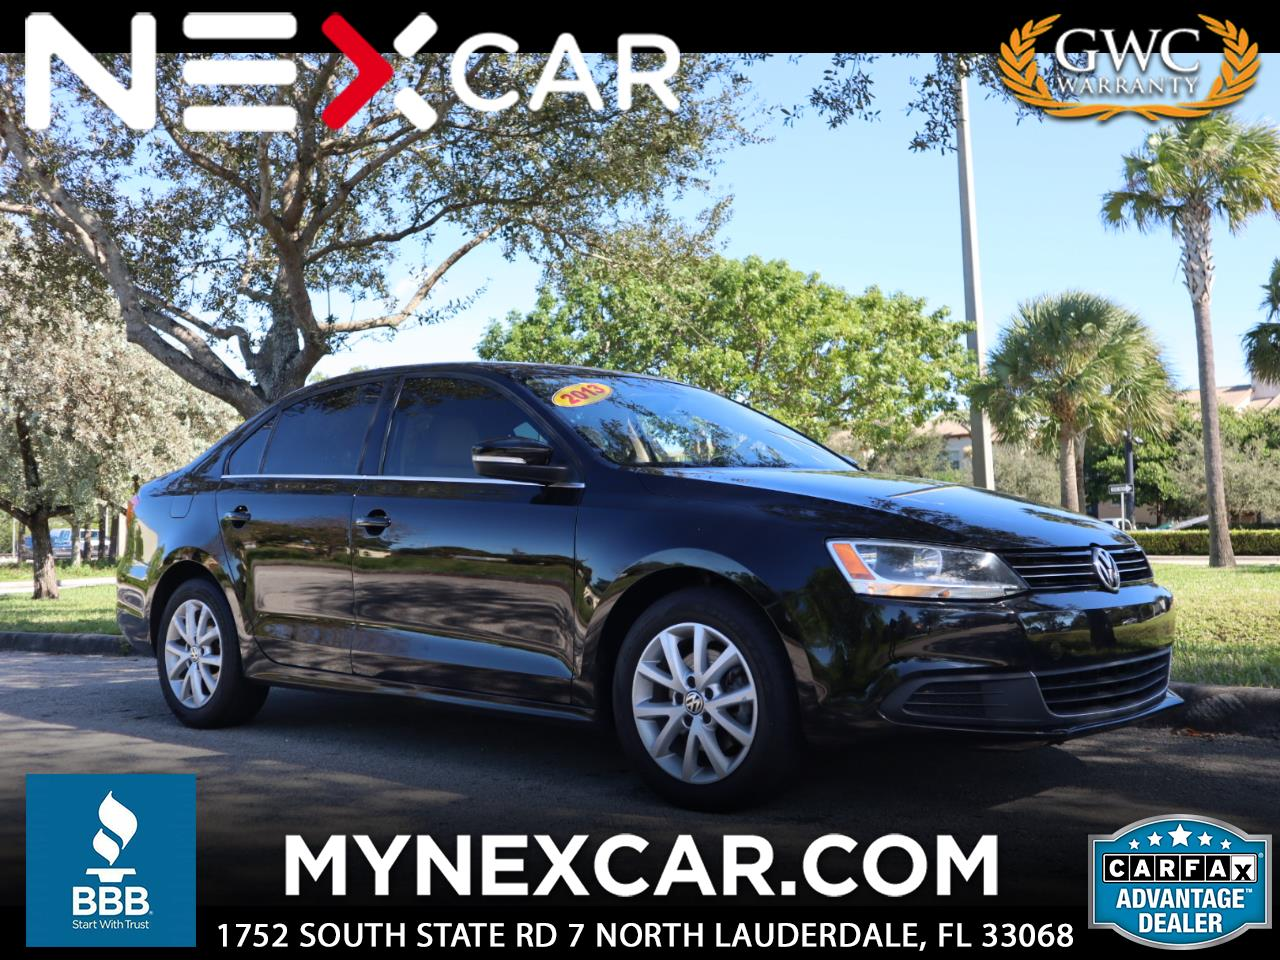 2013 Volkswagen Jetta Sedan 4dr Auto SE w/Convenience/Sunroof PZEV *Ltd Avail*